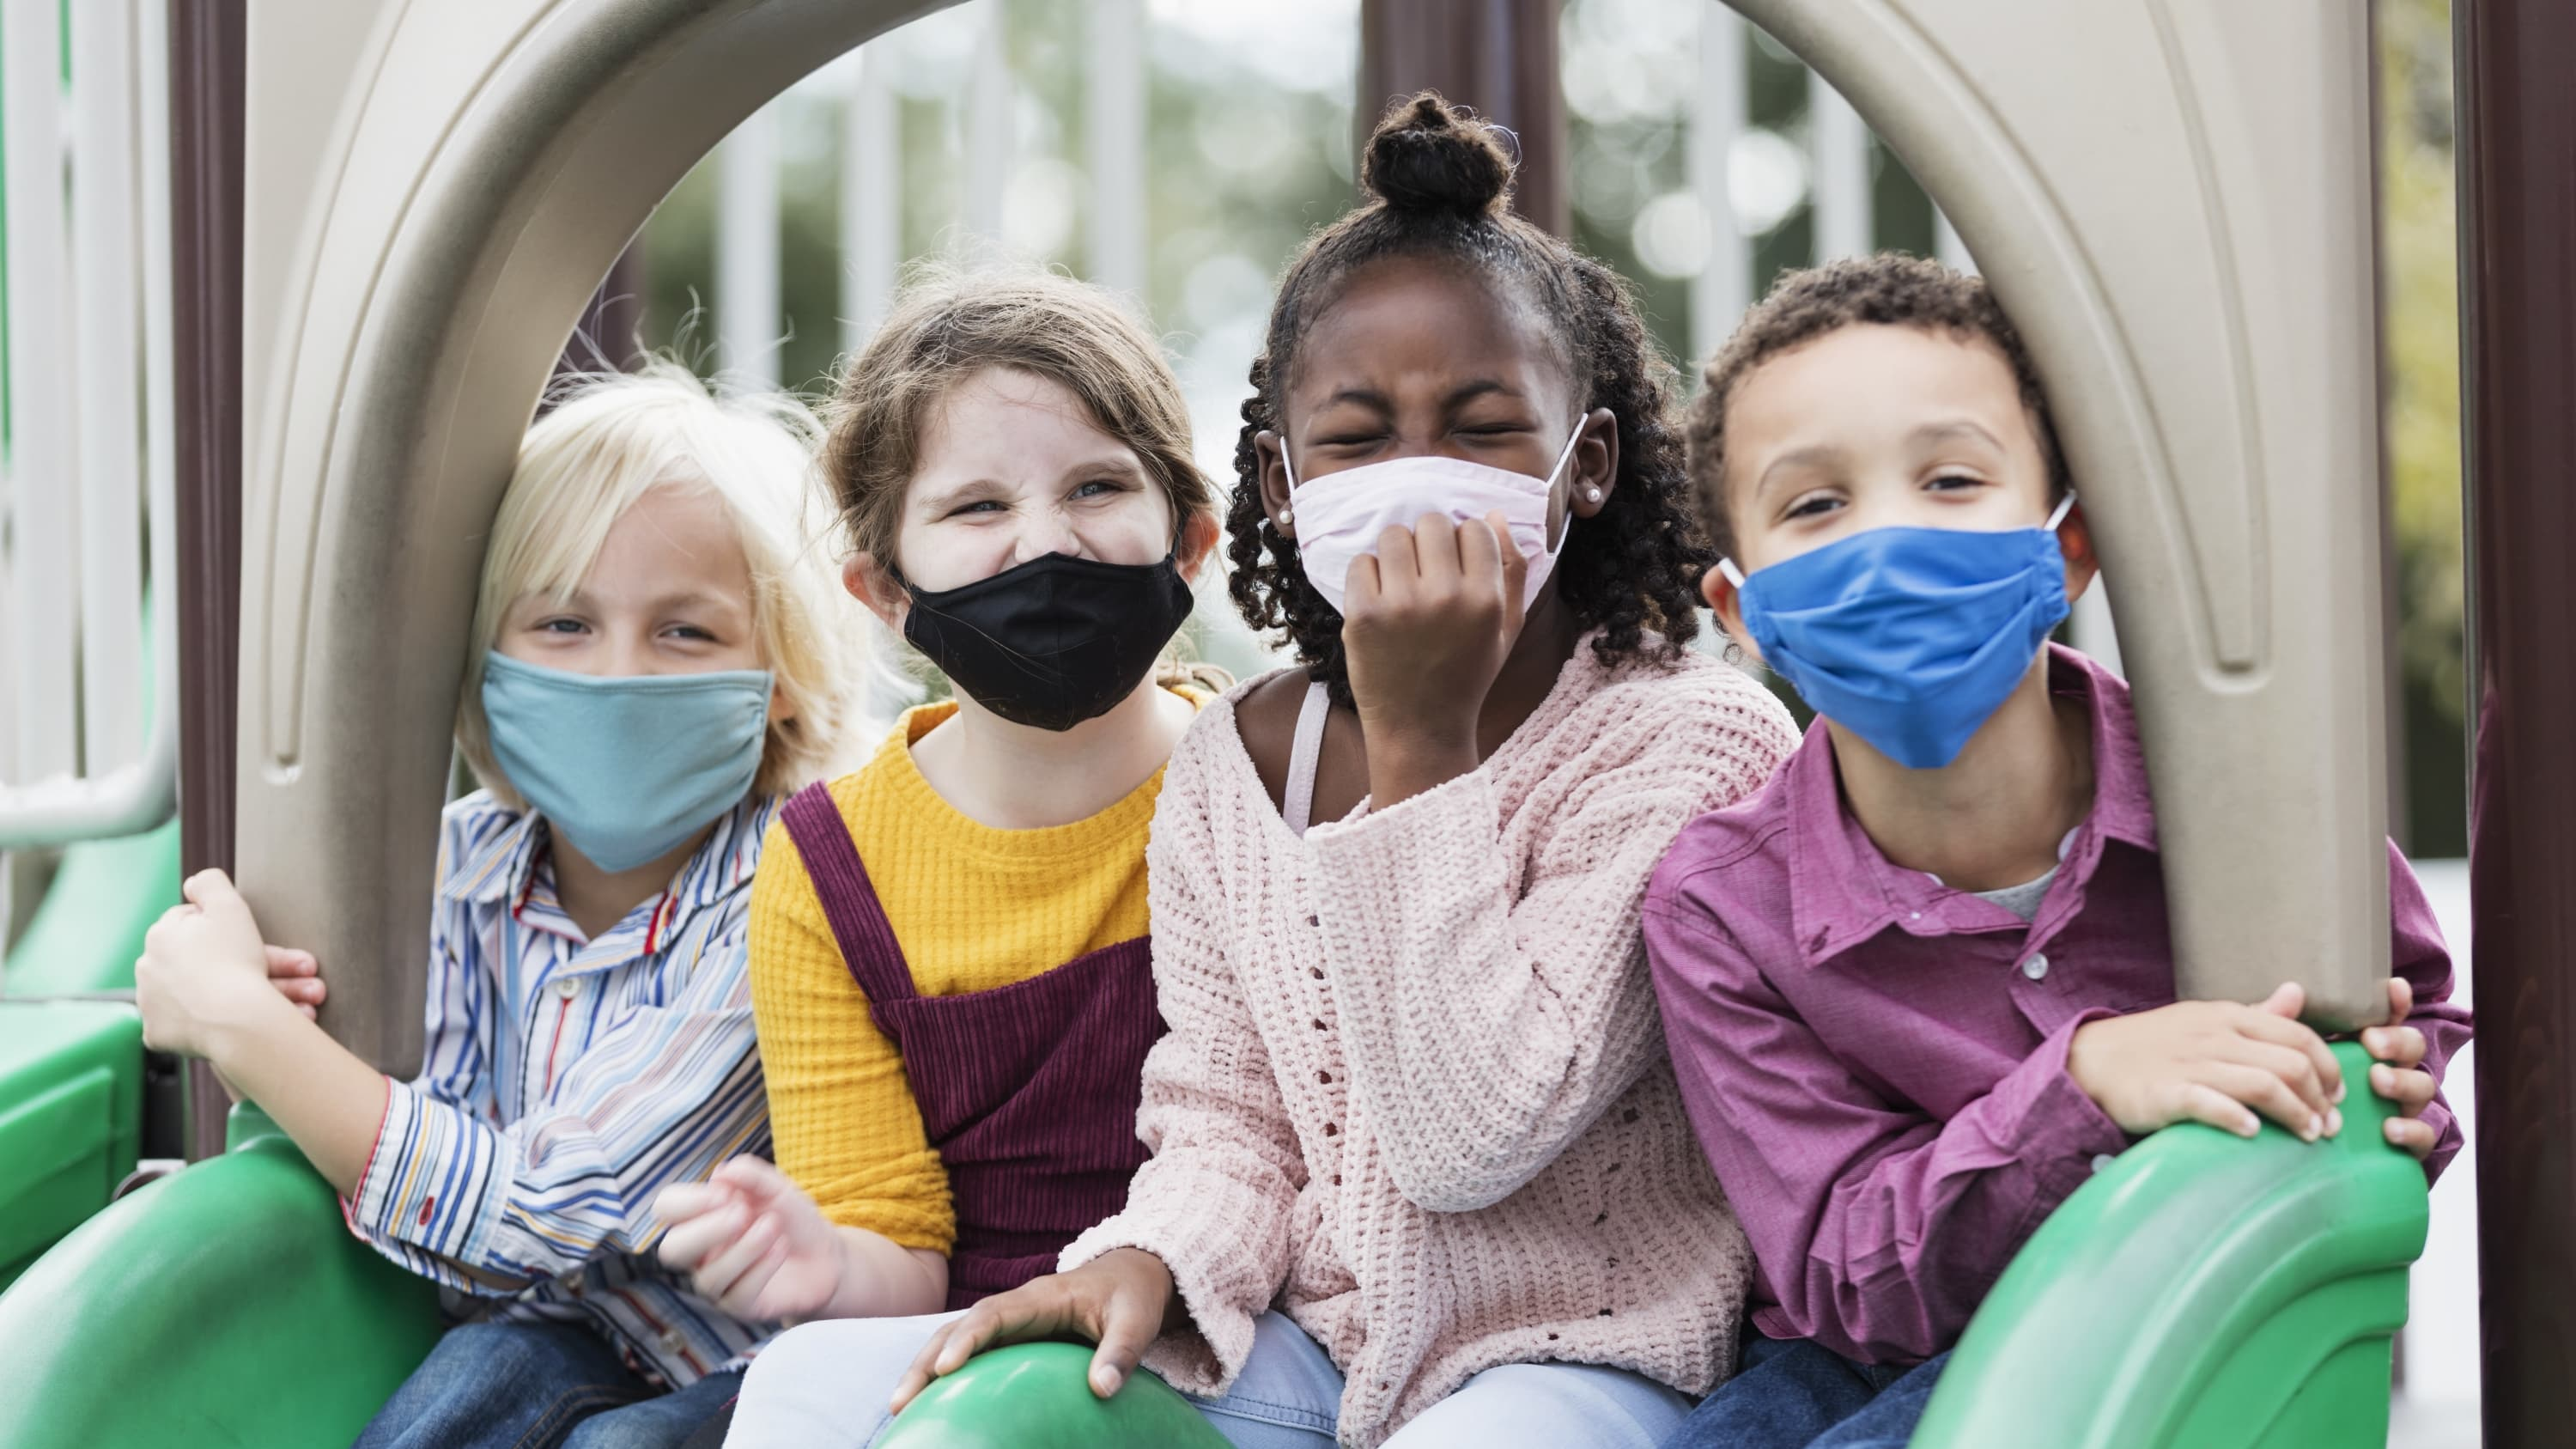 masked kids in a playground who might benefit from COVID-19 vaccine clinical trials